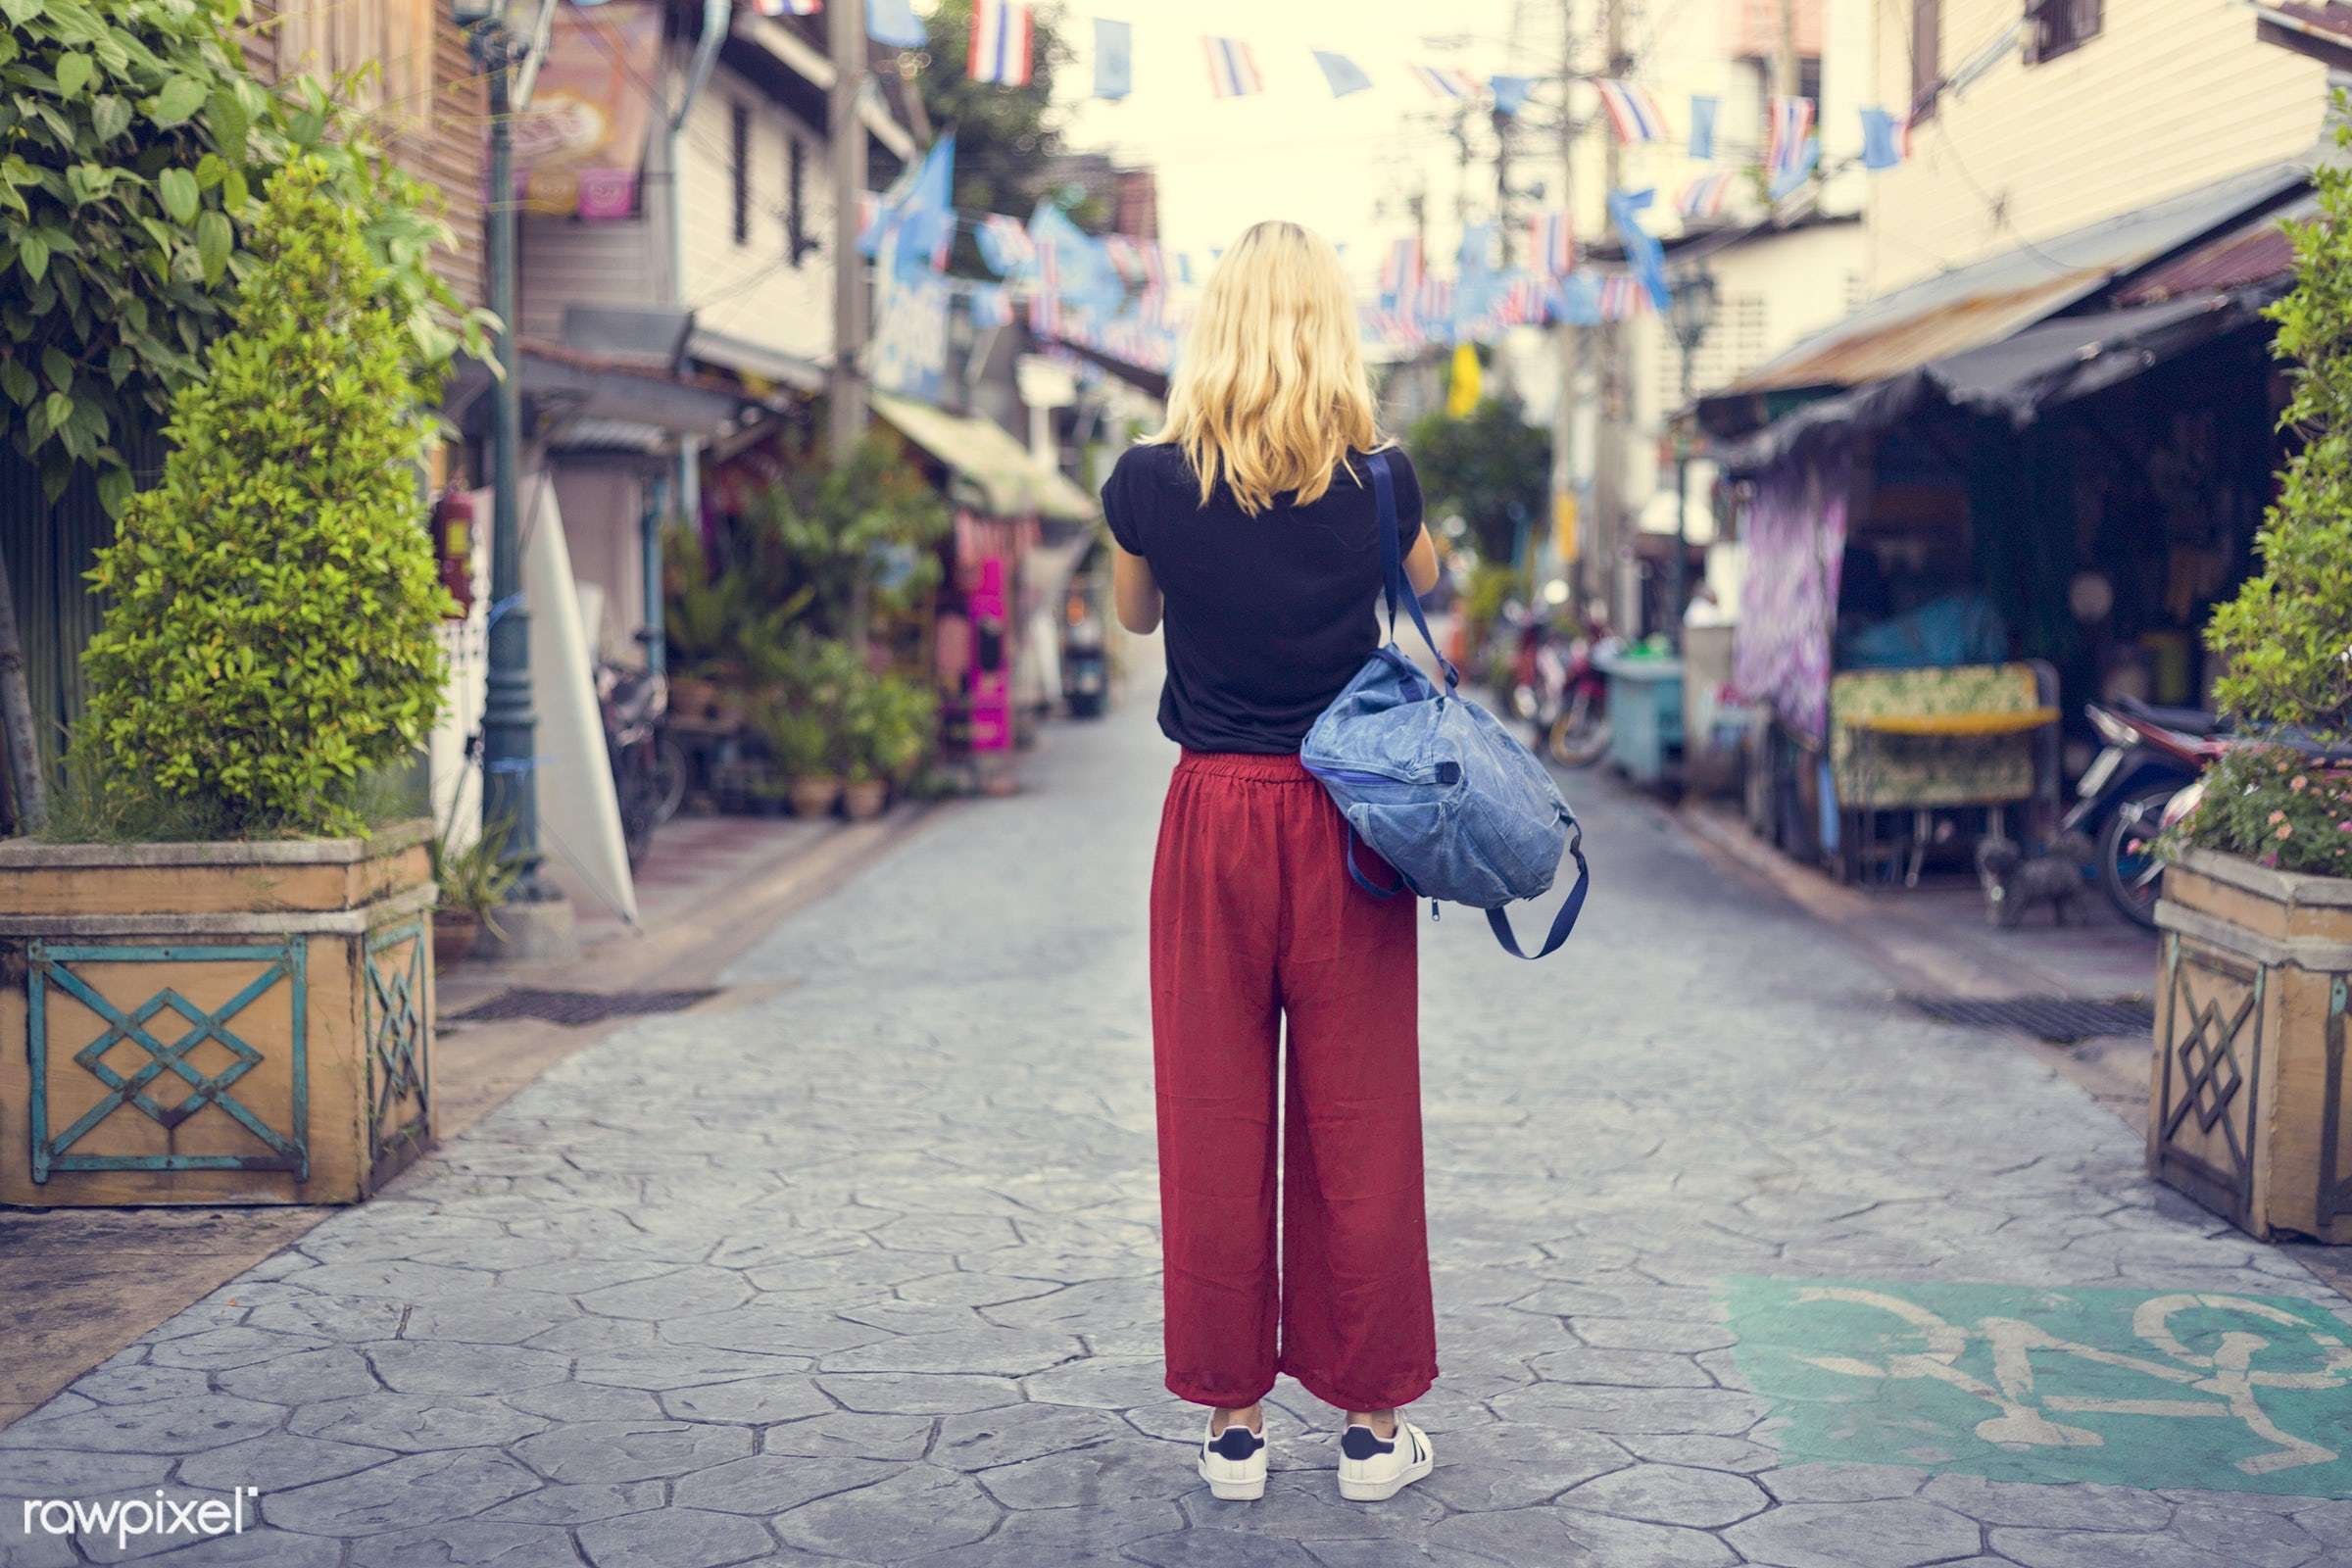 alone, bag, blonde, caucasian, chill, explore, female, one, outdoors, people, person, relax, shooting, solo, standing,...